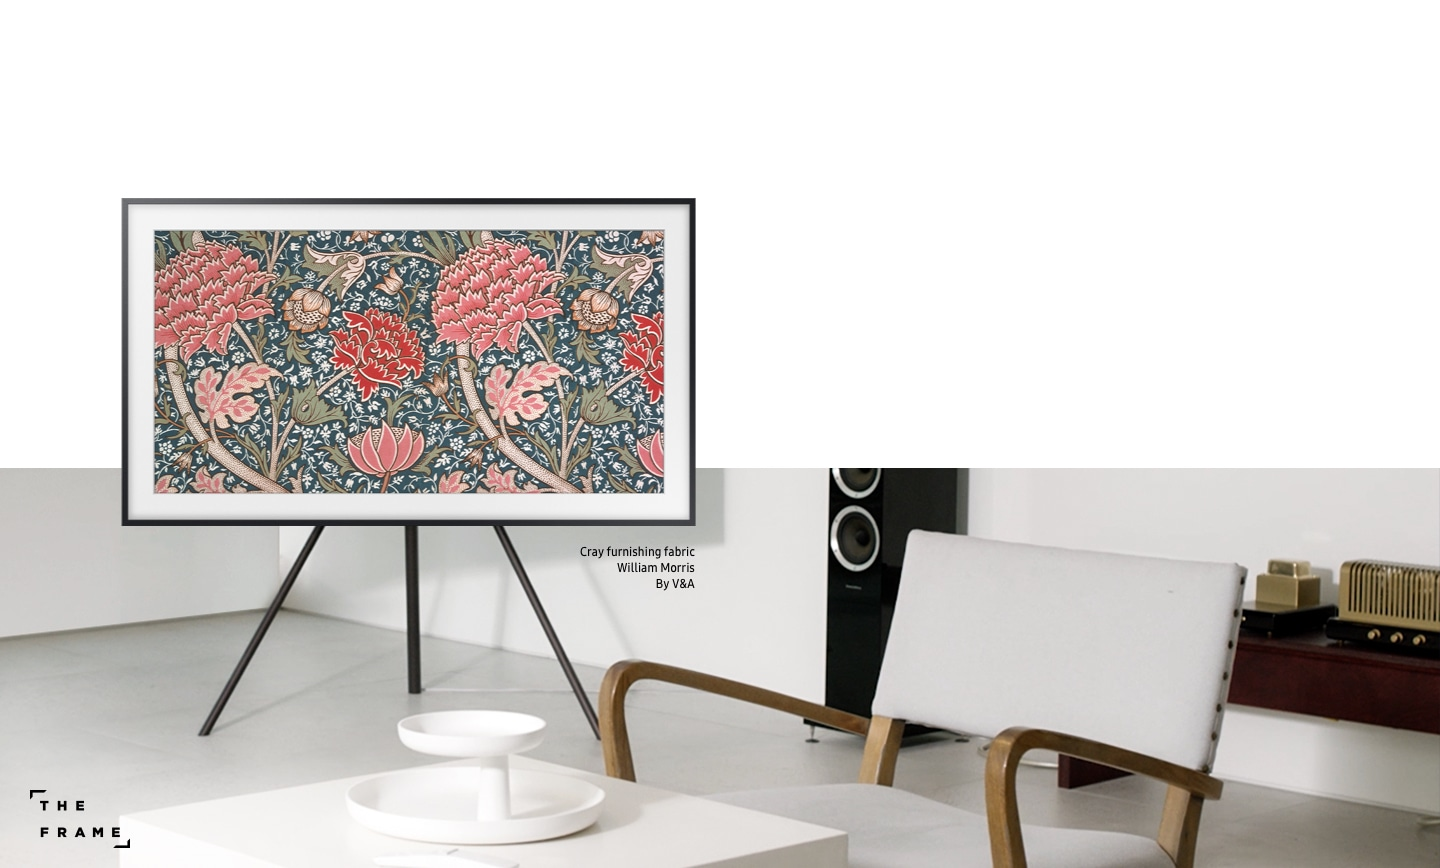 Samsung The frame tv is displaying art work of Cray furnishing fabric by William Morris, V&A. Frame tv makes every space more aesthetically, and can play a variety roles wherever it is placed.